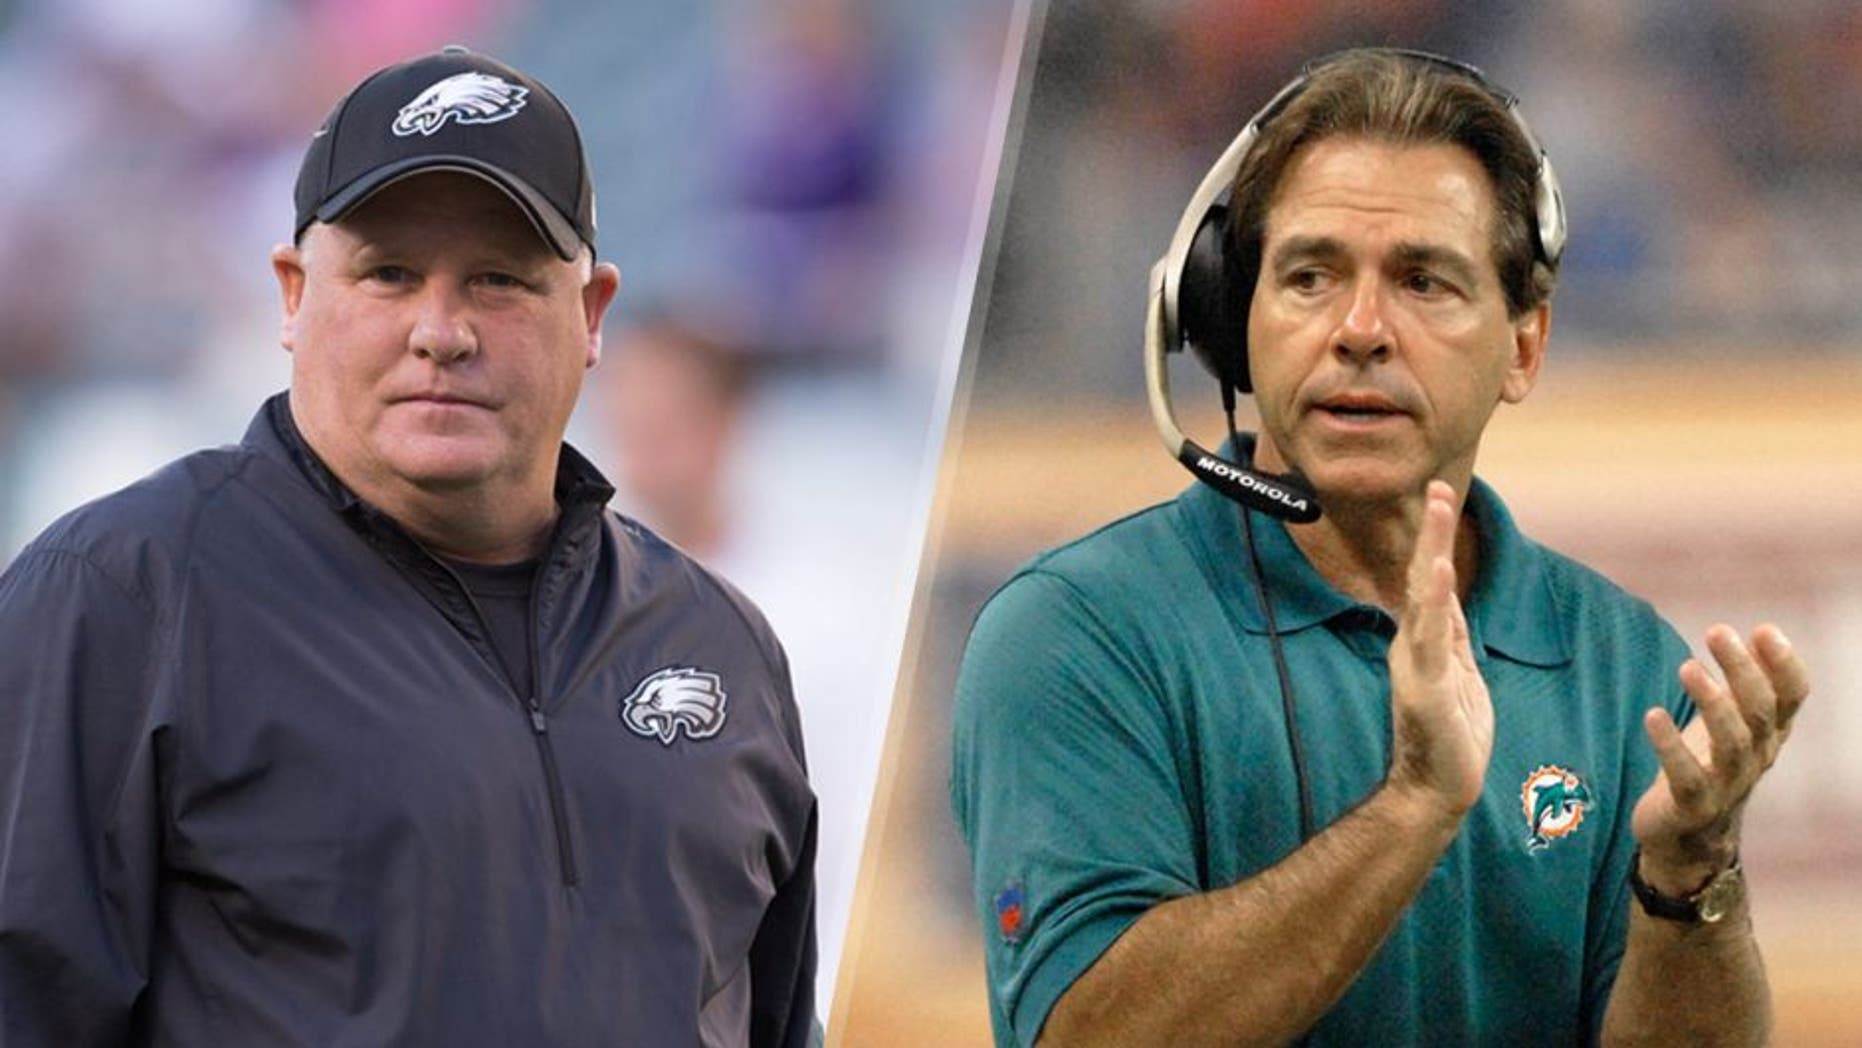 PHILADELPHIA, PA - AUGUST 22: Head coach Chip Kelly of the Philadelphia Eagles looks on prior to the game against the Baltimore Ravens on August 22, 2015 at Lincoln Financial Field in Philadelphia, Pennsylvania. (Photo by Mitchell Leff/Getty Images) Miami Dolphins coach Nick Saban on the sidelines against the Detroit Lions in a Thanksgiving Day game Nov. 23, 2006 in Detroit. The Dolphins won 21 - 10. (Photo by Al Messerschmidt/Getty Images)